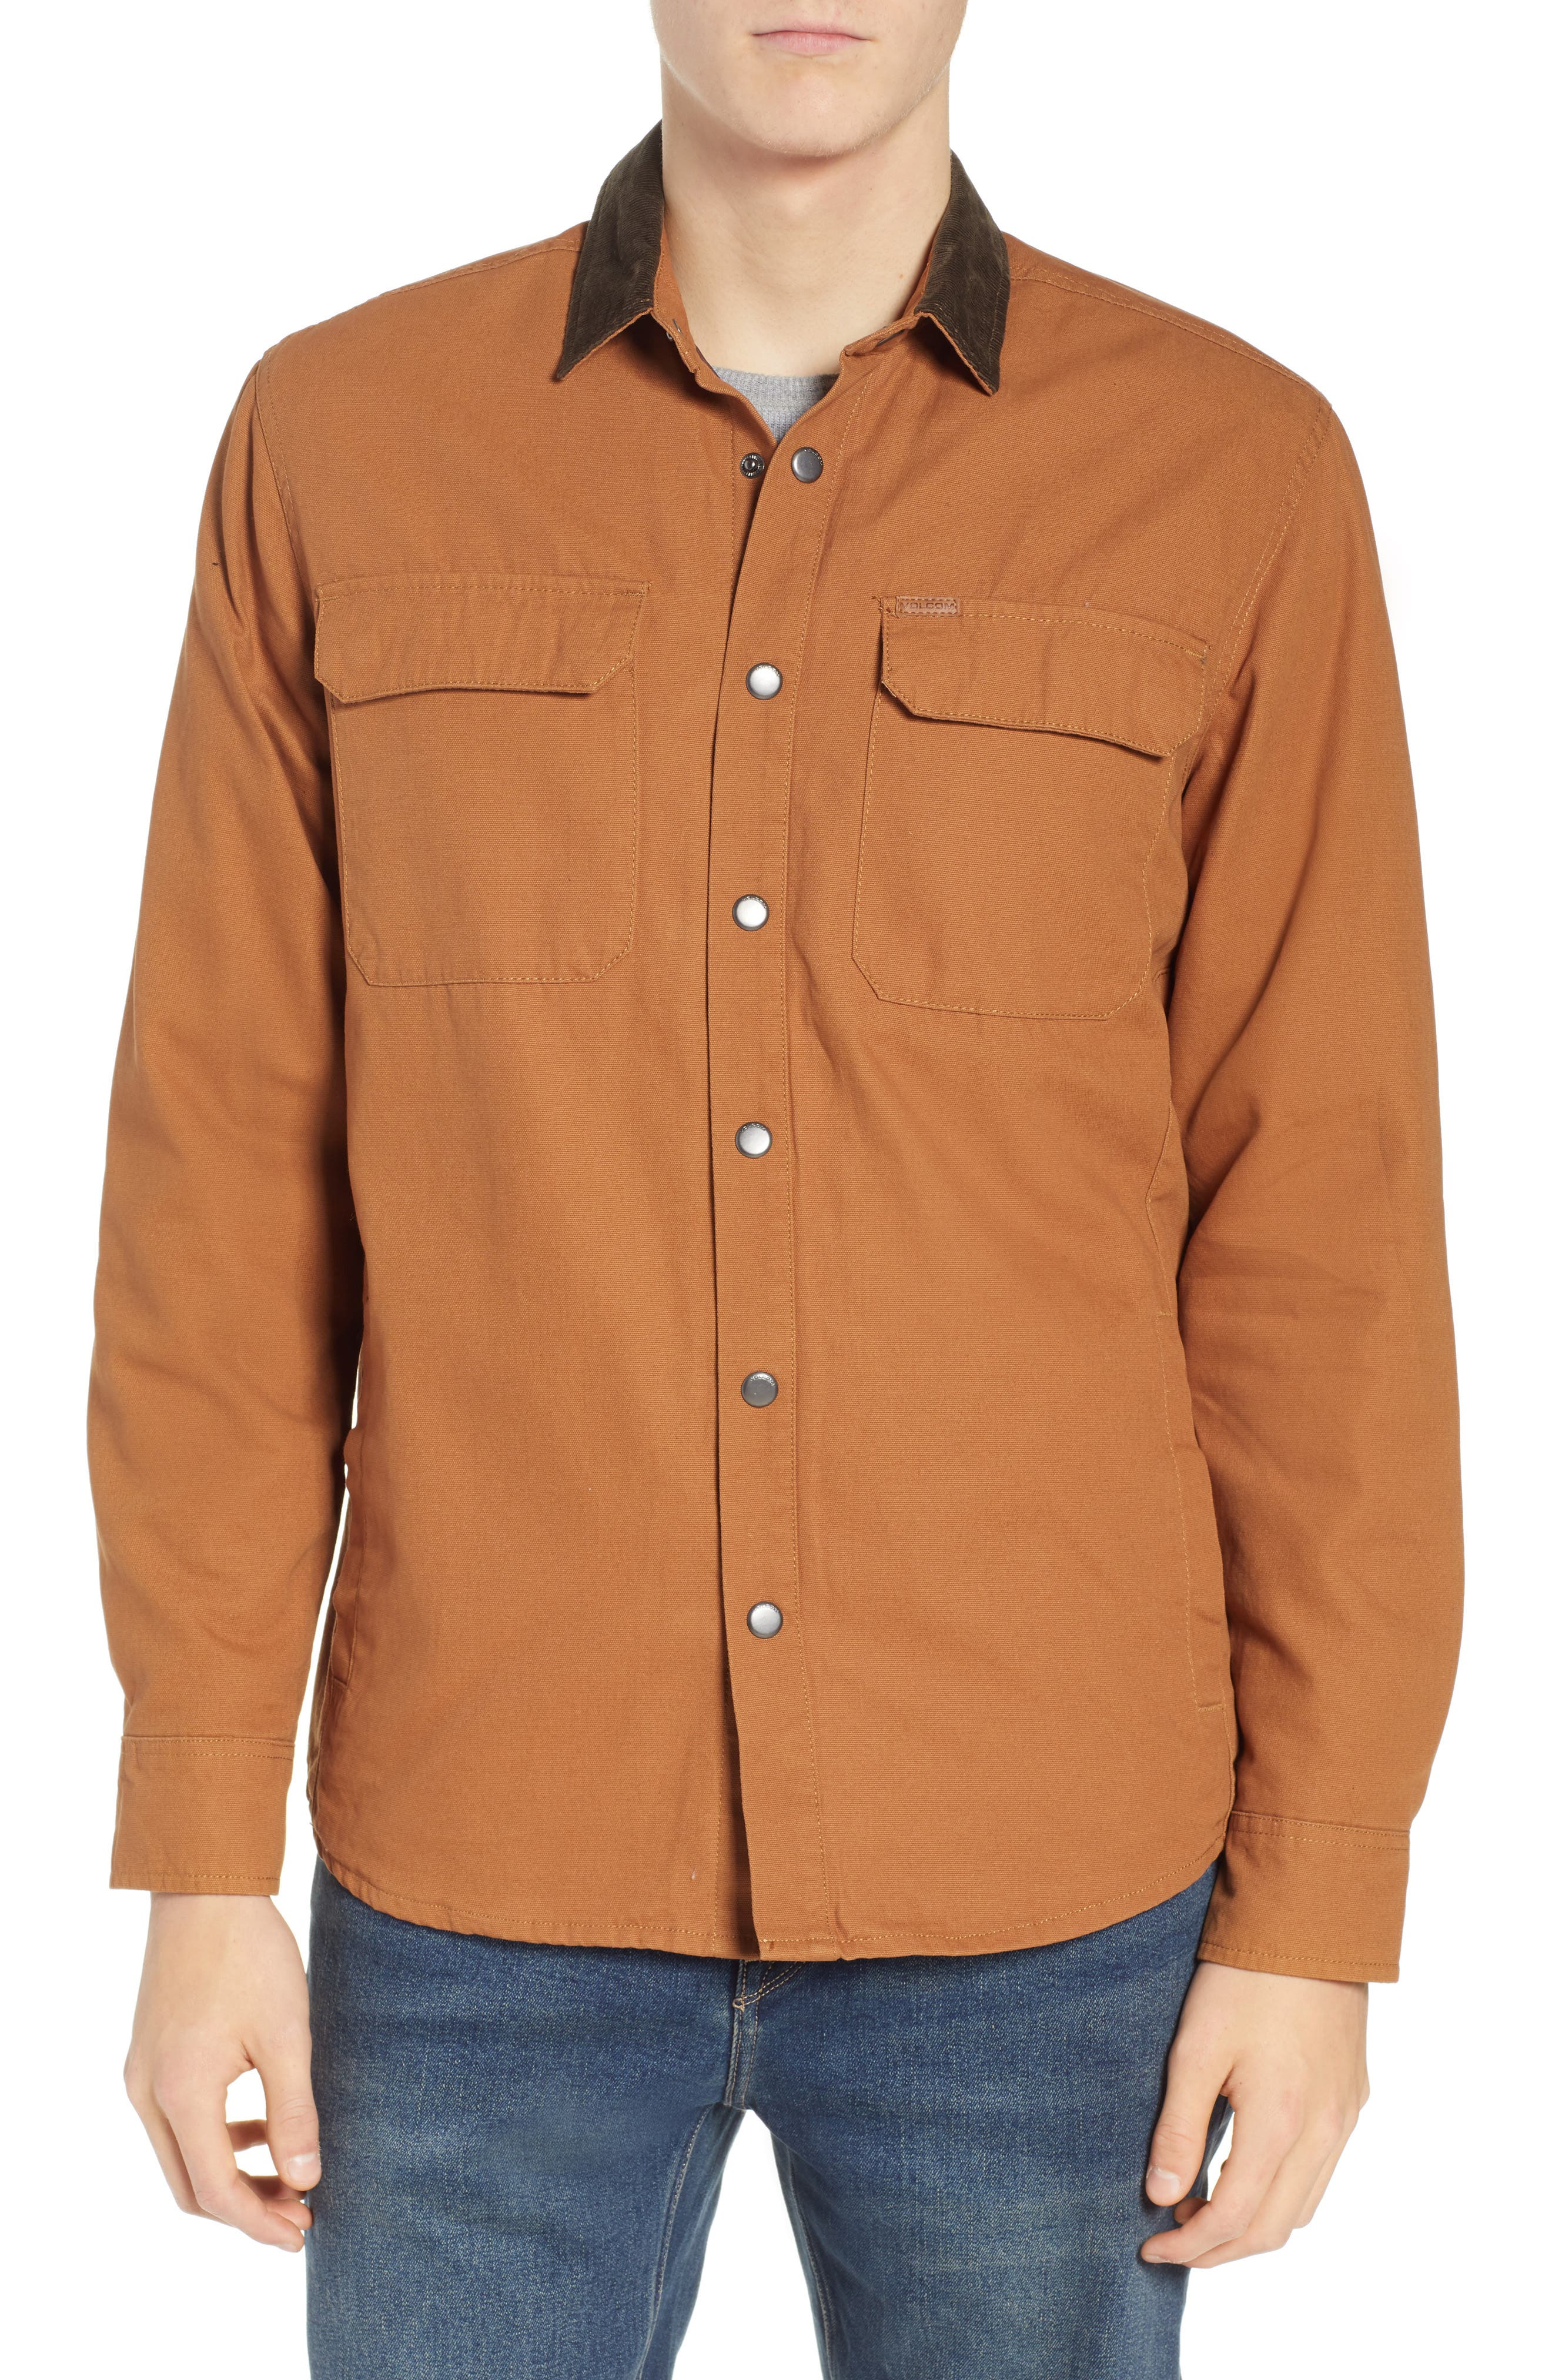 Larkin Classic Fit Jacket,                             Alternate thumbnail 4, color,                             CAMEL